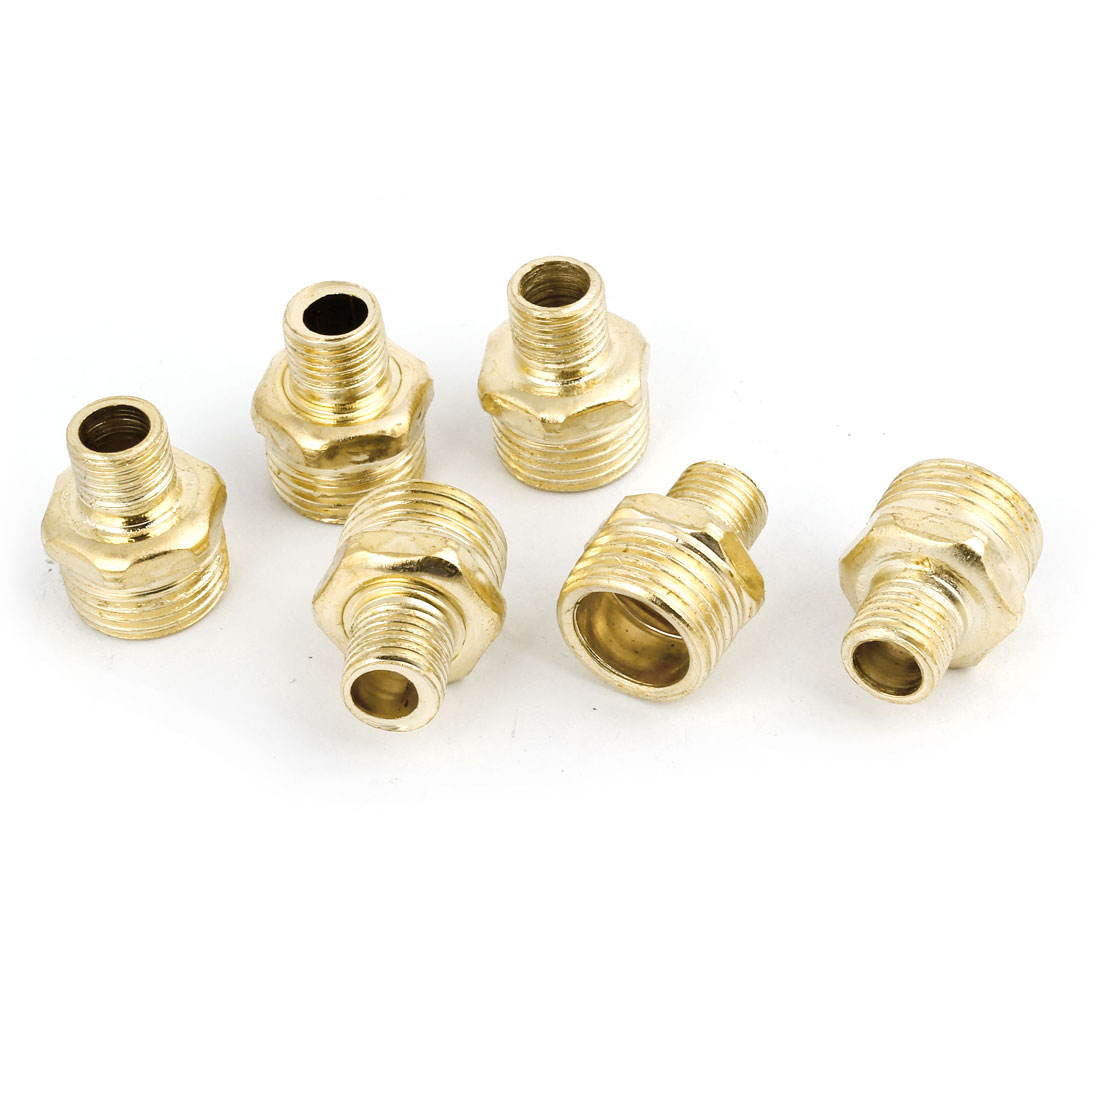 6 Pcs Pneumatic Air Pipe 1/8PT to 1/2PT M/M Thread Brass Hex Reducing Nipple